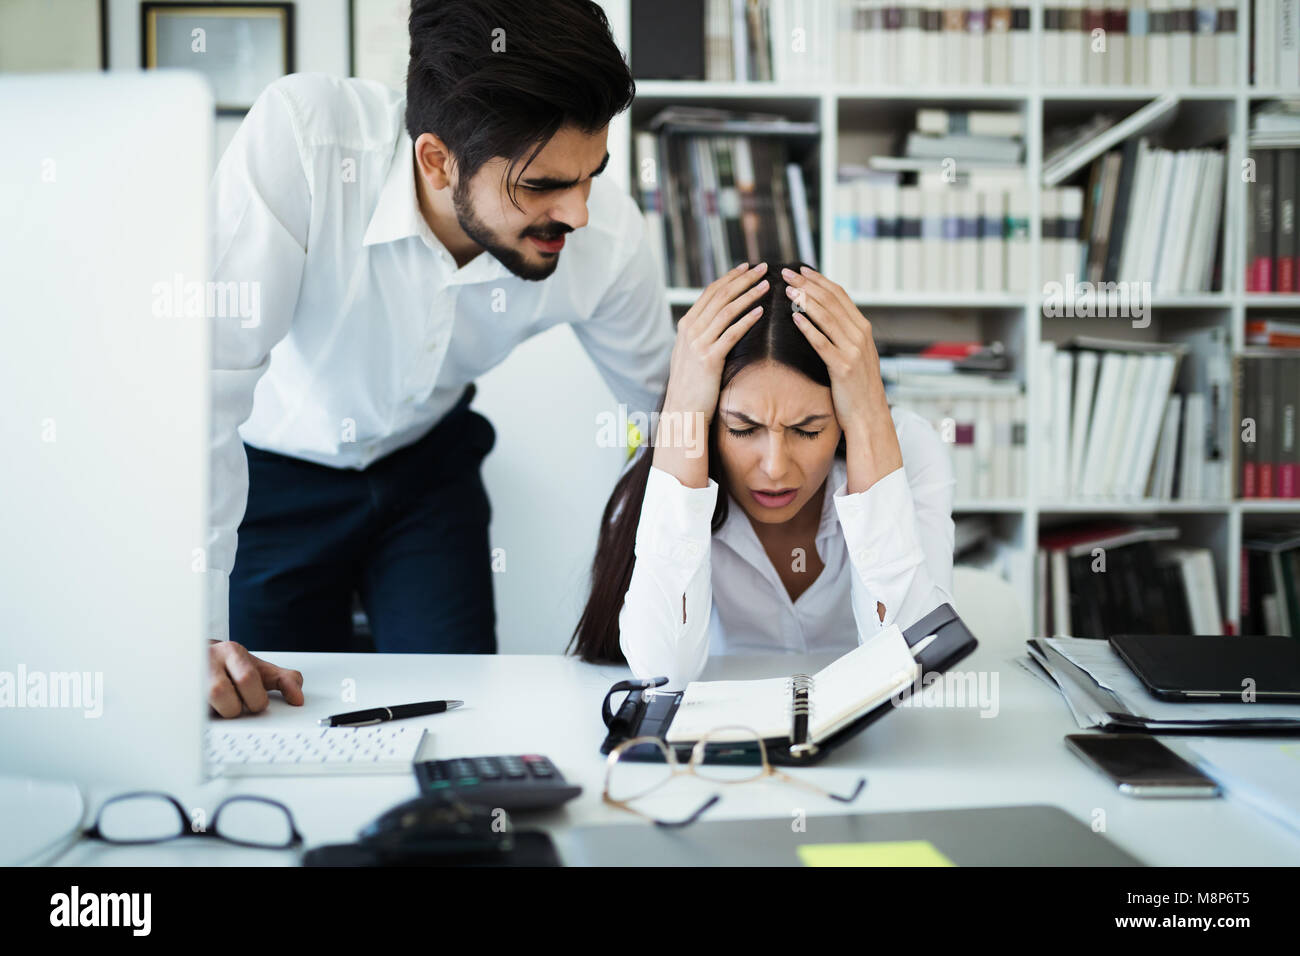 Angry irritated boss reprimanding employee afraid to be fired, accusing of mistake in report, bad work - Stock Image